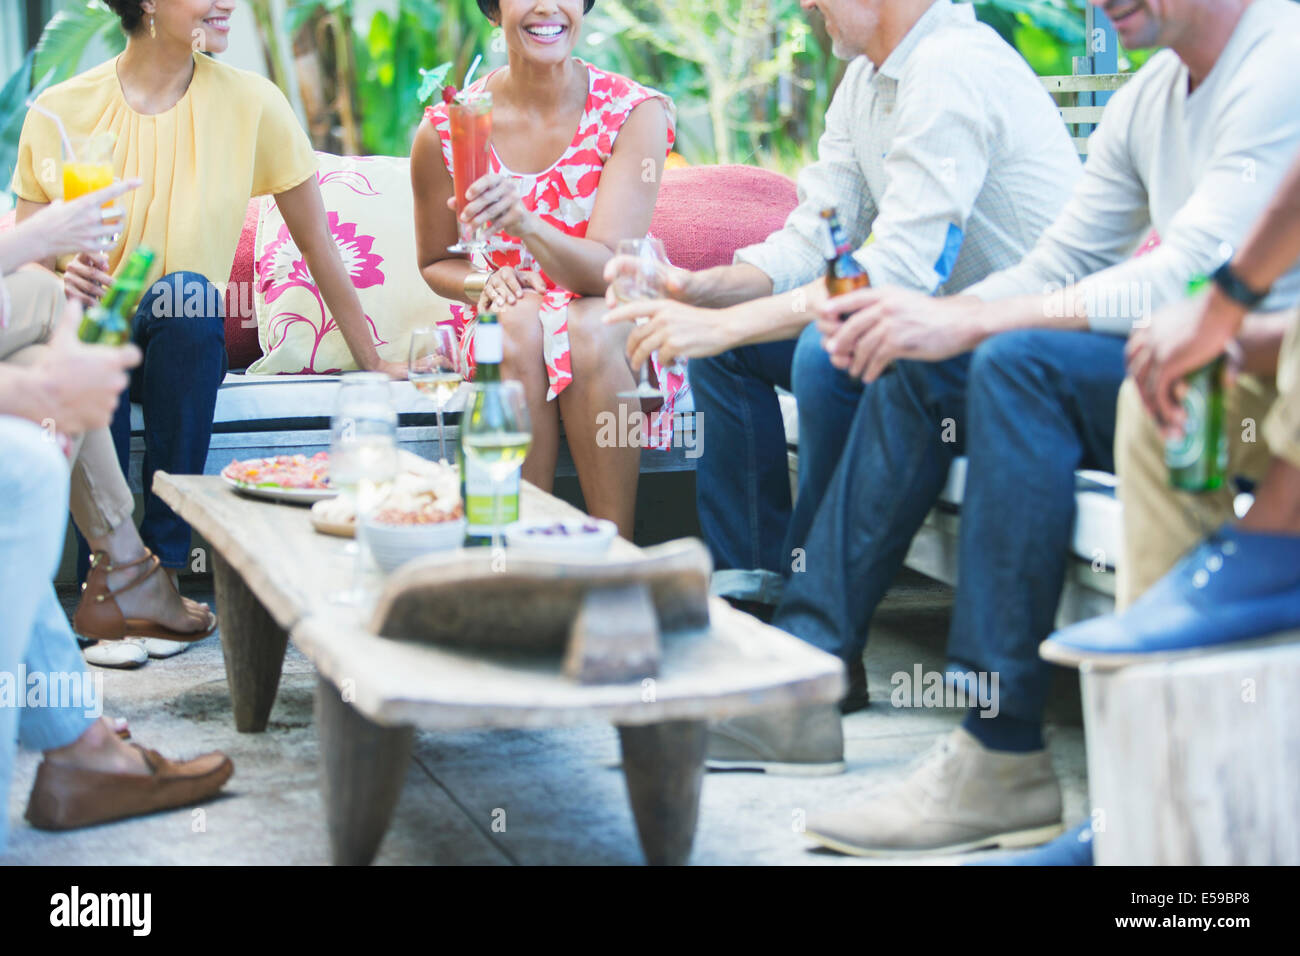 Friends relaxing together at party - Stock Image